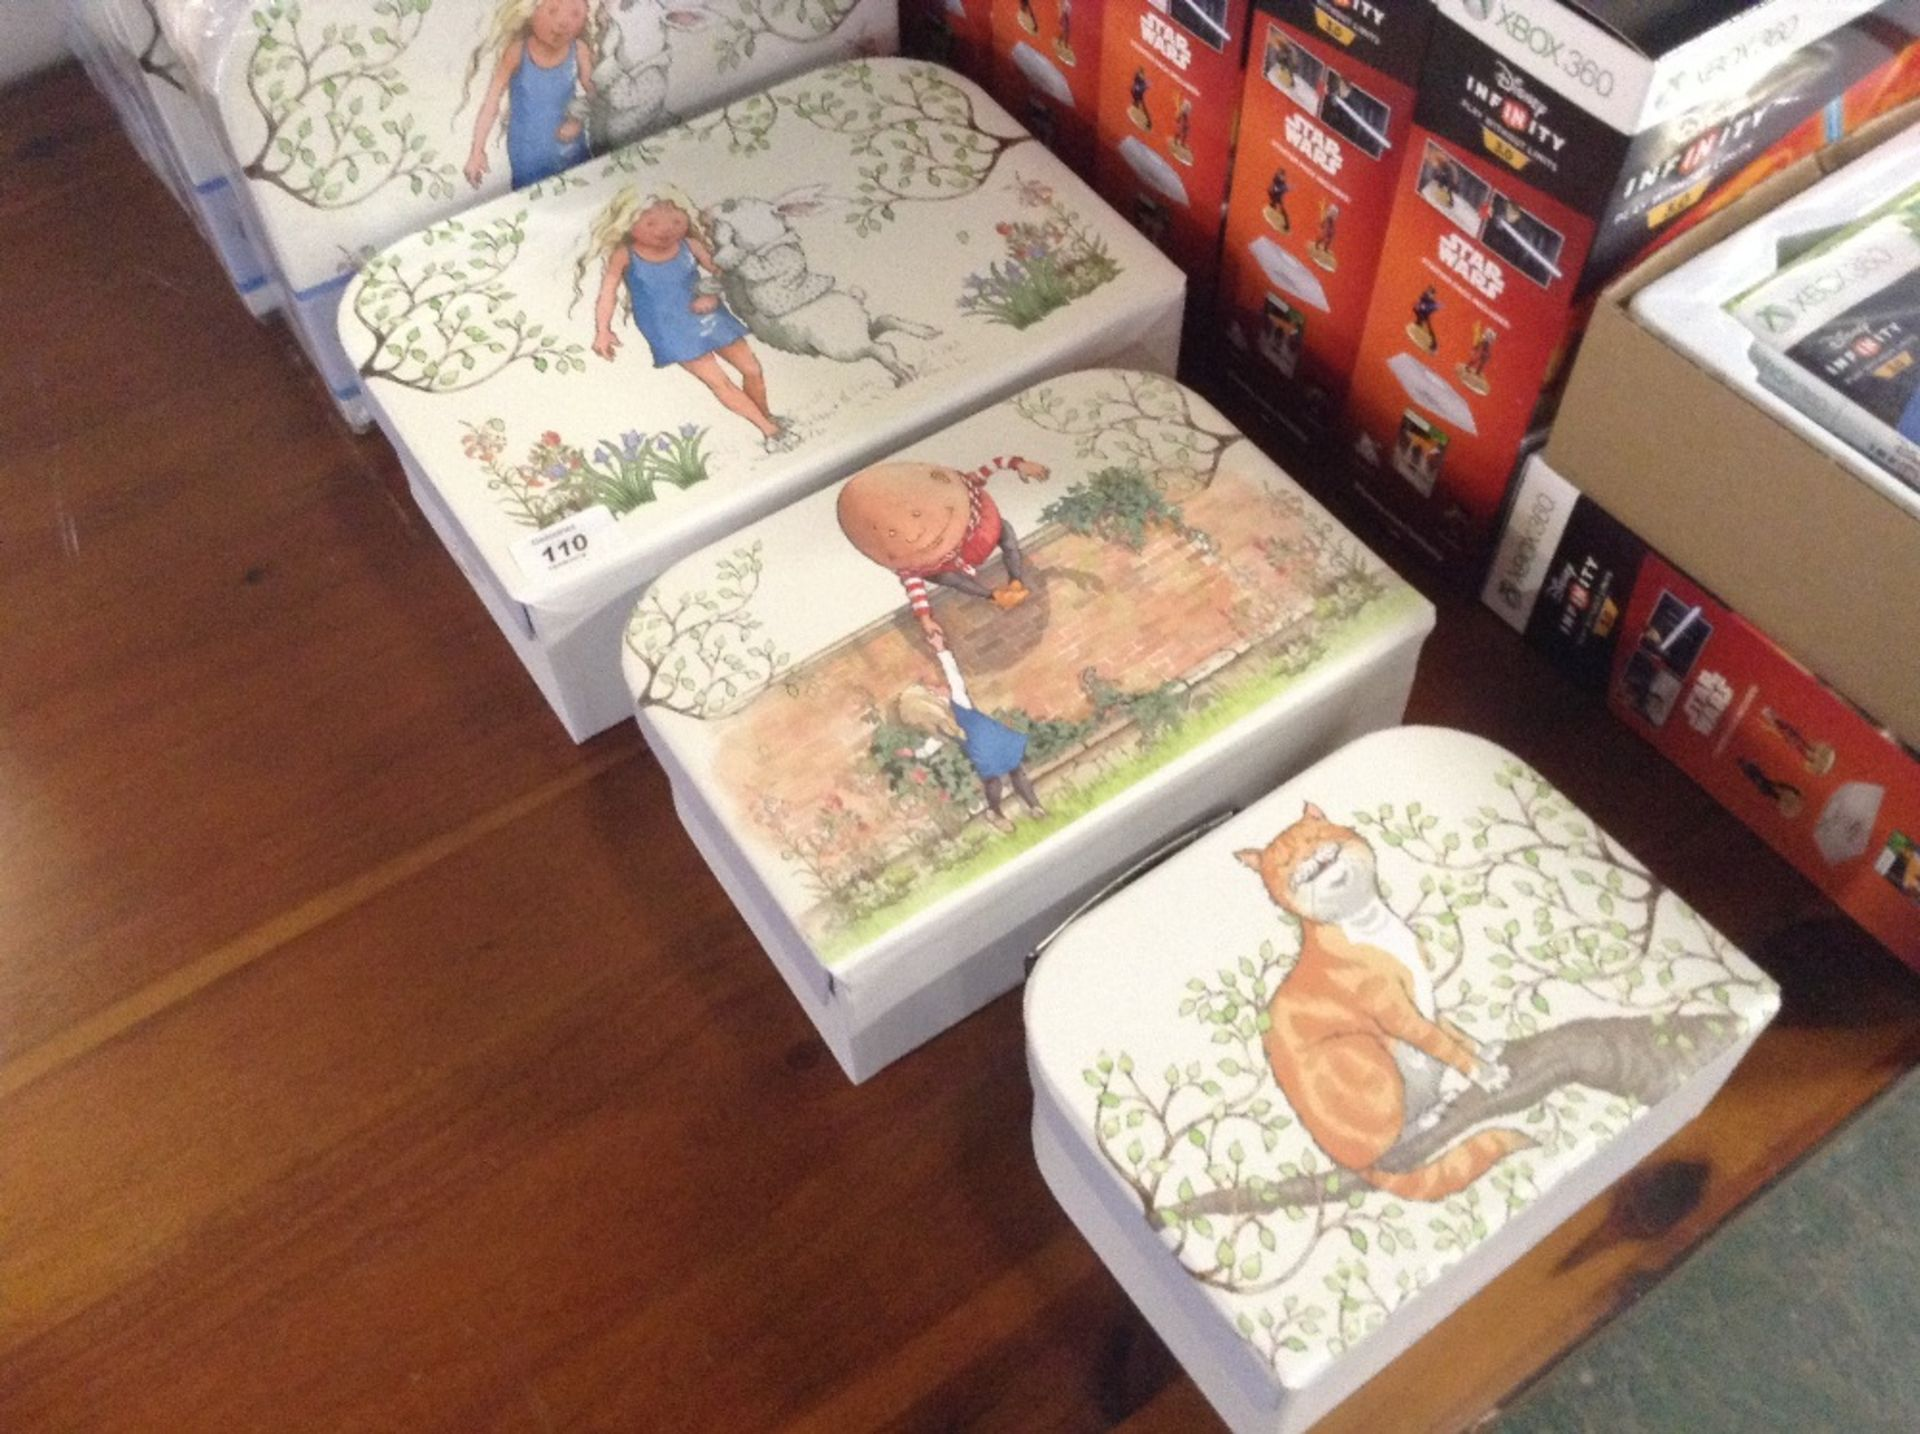 Lotto 110 - SET OF 3 ALICE IN WONDERLAND STORAGE BOXES